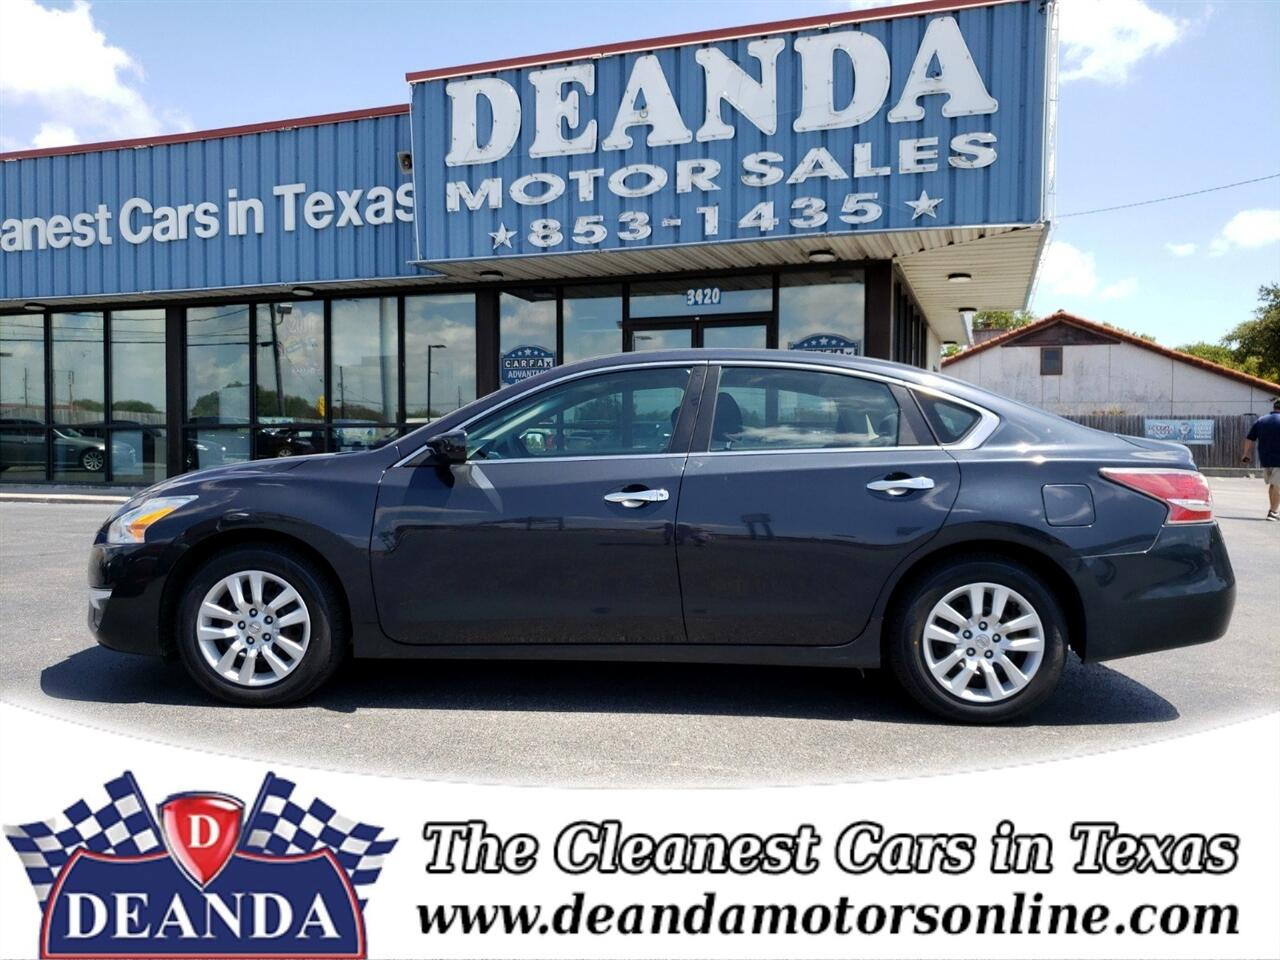 Deanda Auto Sales >> Used Cars For Sale Corpus Christi Tx 78415 Deanda Motor Sales